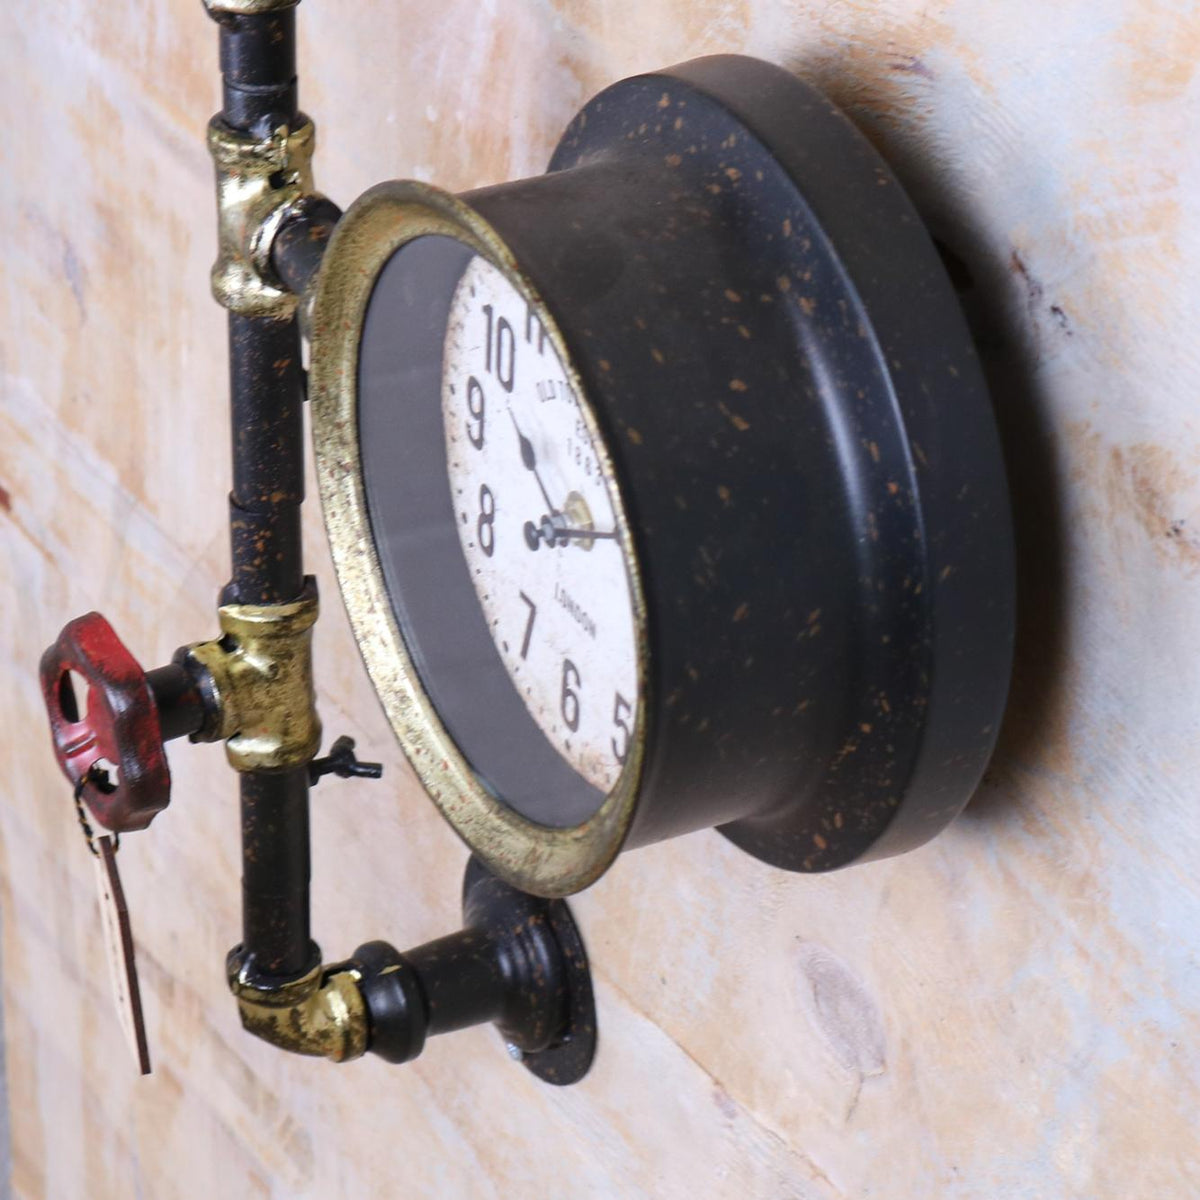 Balpur Industrial Pipe Wall Clock Black and Antique Gold